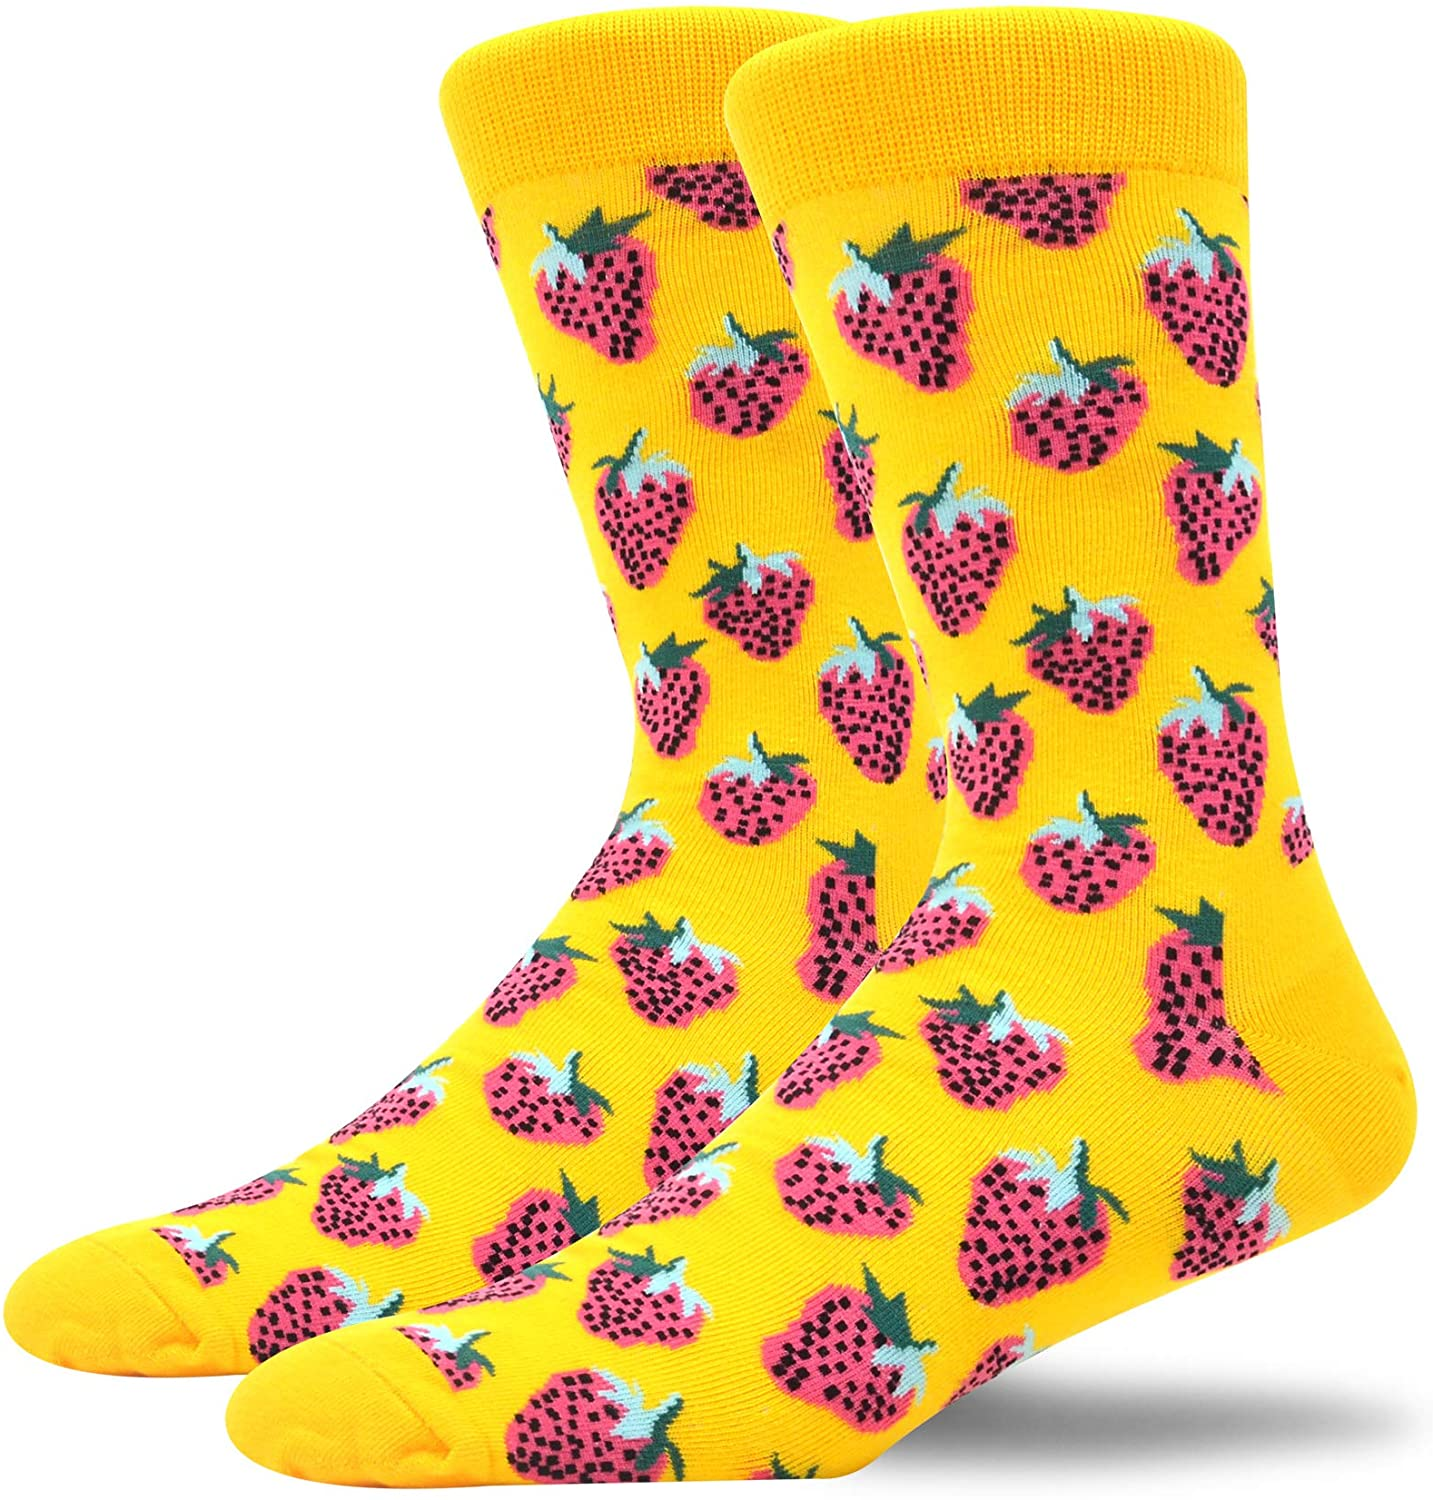 MAKABO Novelty Men For Socks Casual Colorful Funny Cotton Crew Socsk